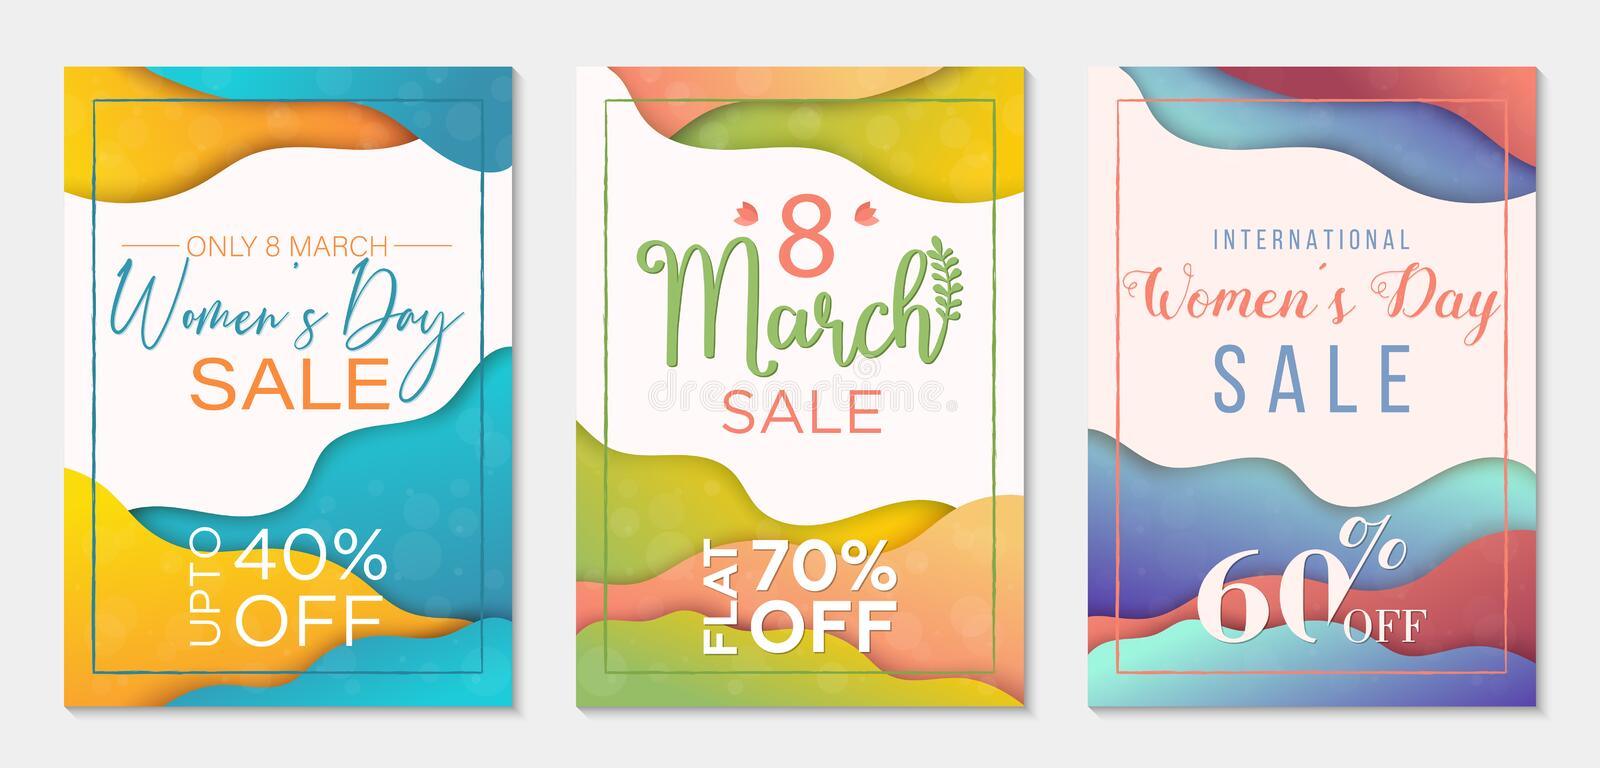 Collection of three sale banner templates to International Womens Day. Paper cut style backgrounds. Colorful templates for business royalty free illustration